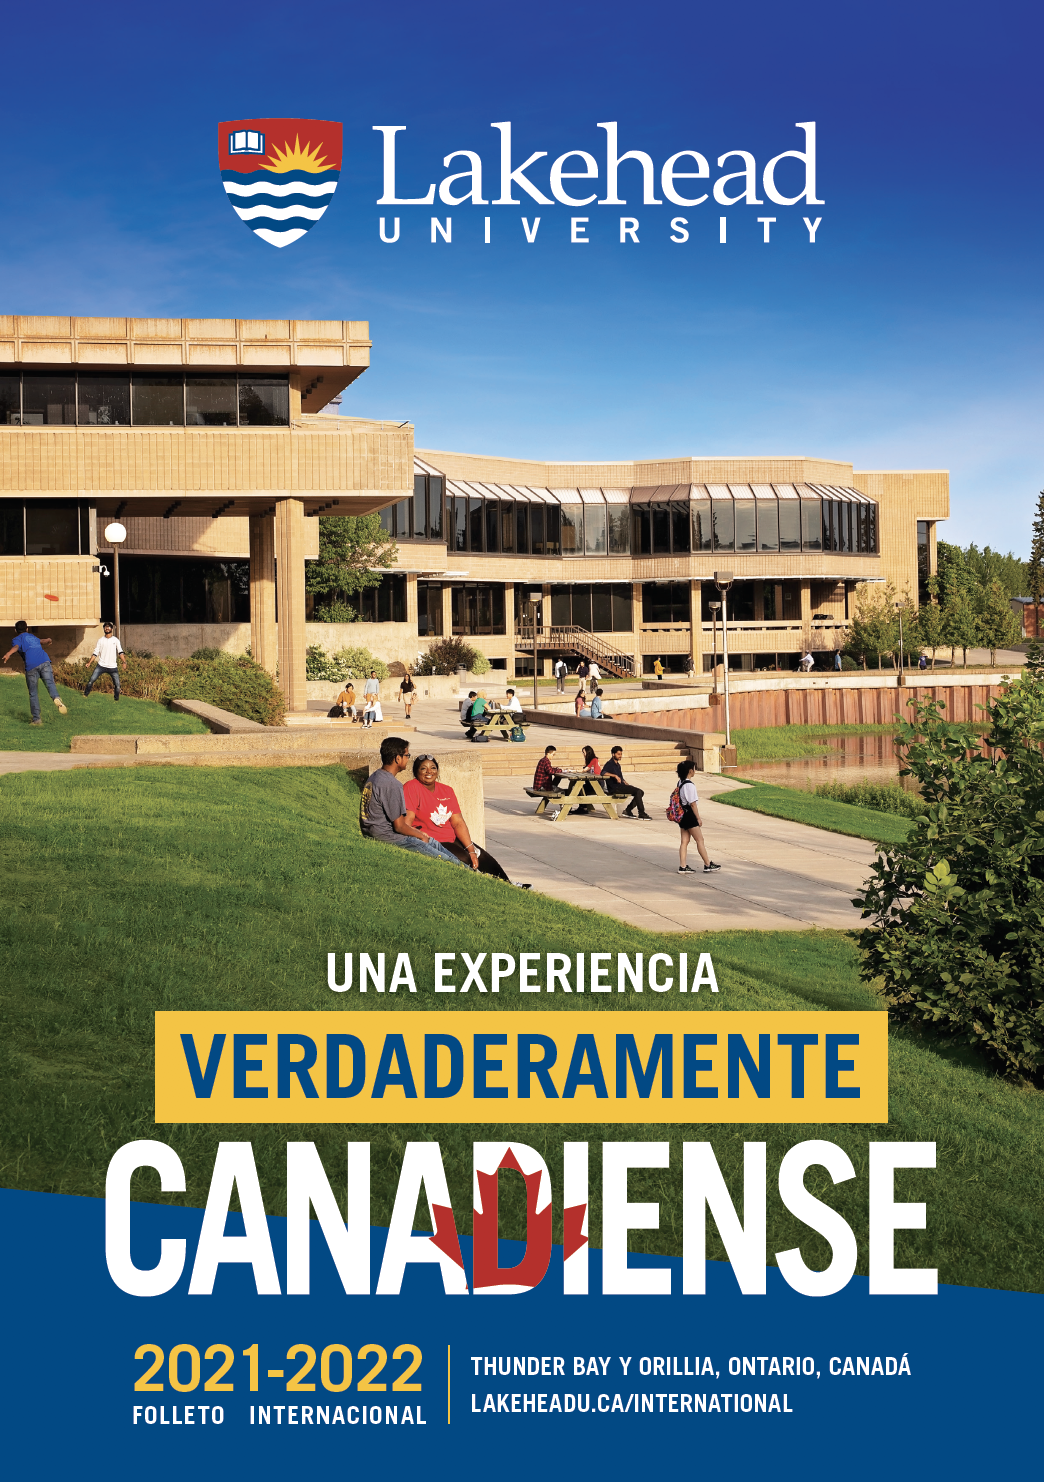 The 2021 Lakehead University International Viewbook cover.